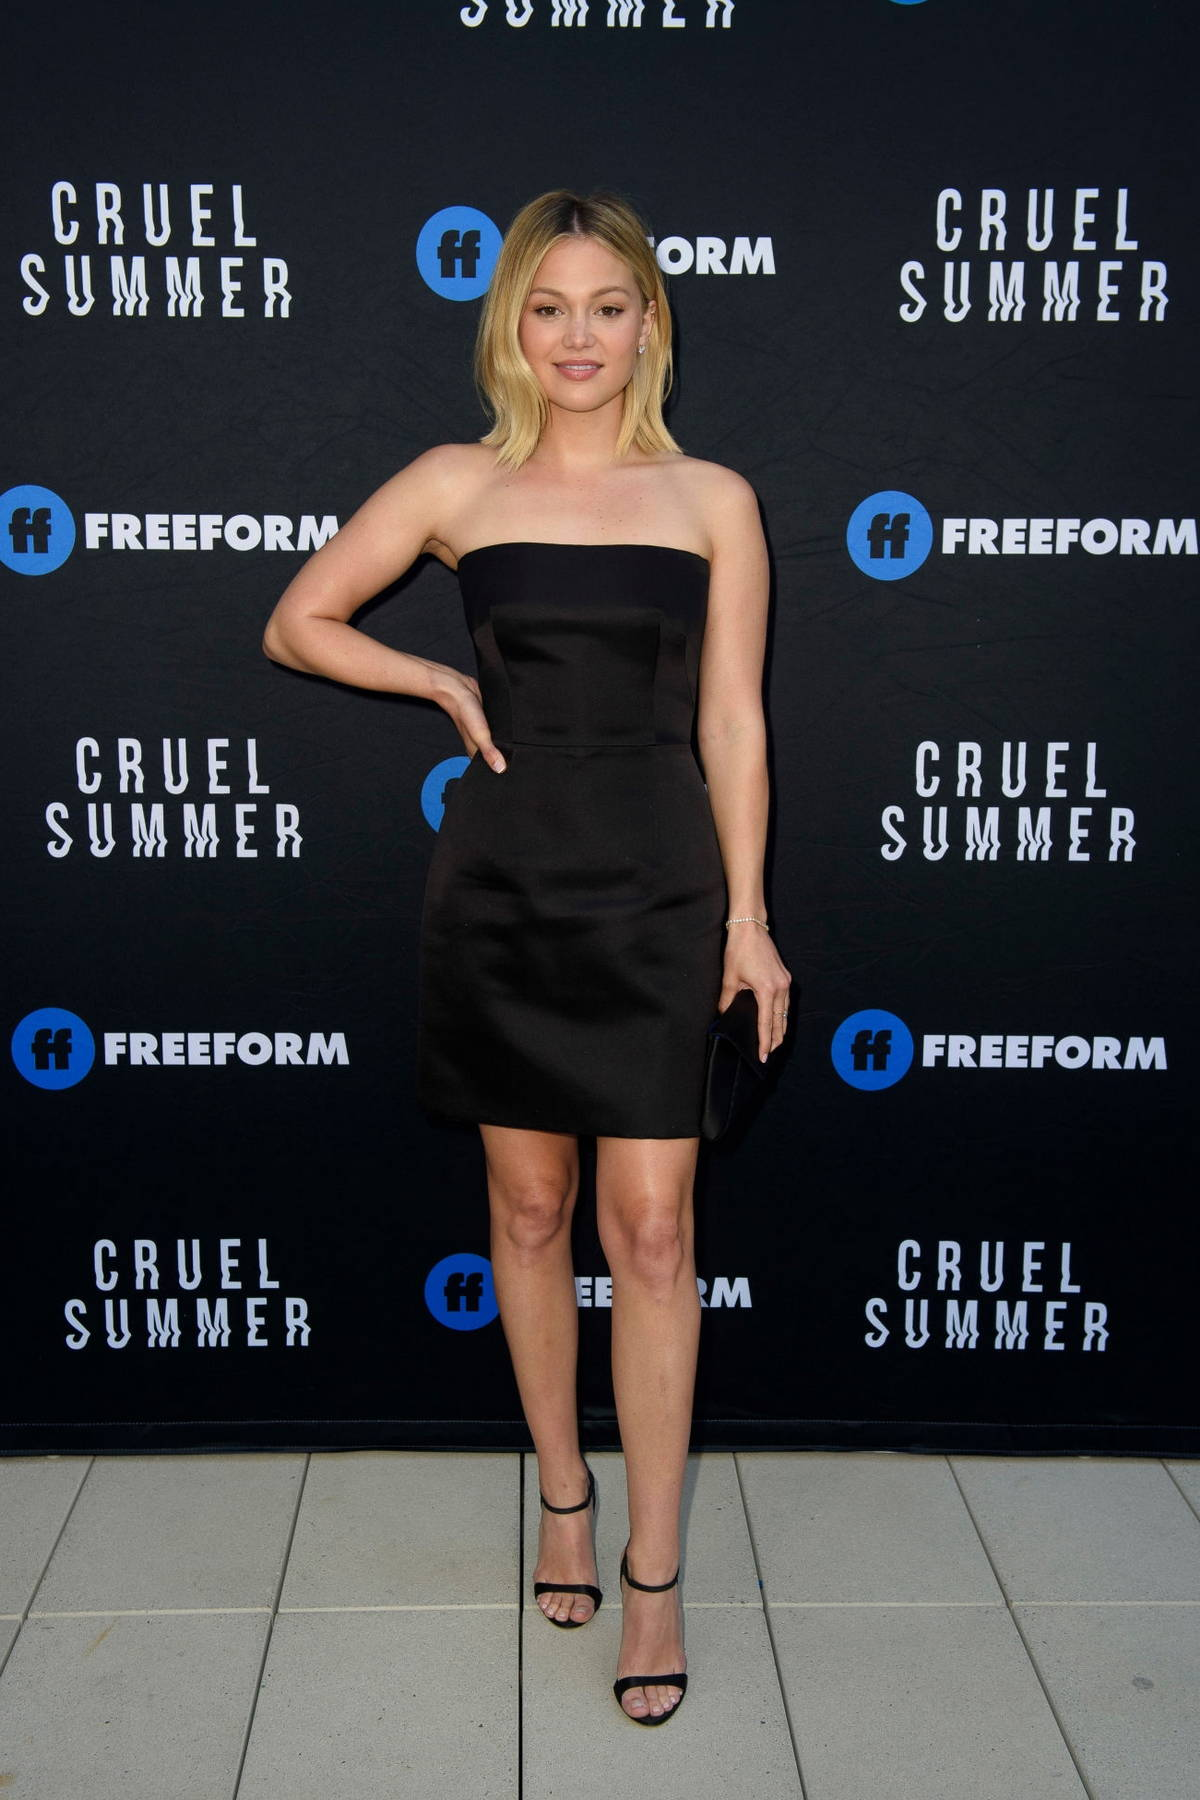 Olivia Holt attends the premiere of Freeform's 'Cruel Summer' in Los Angeles